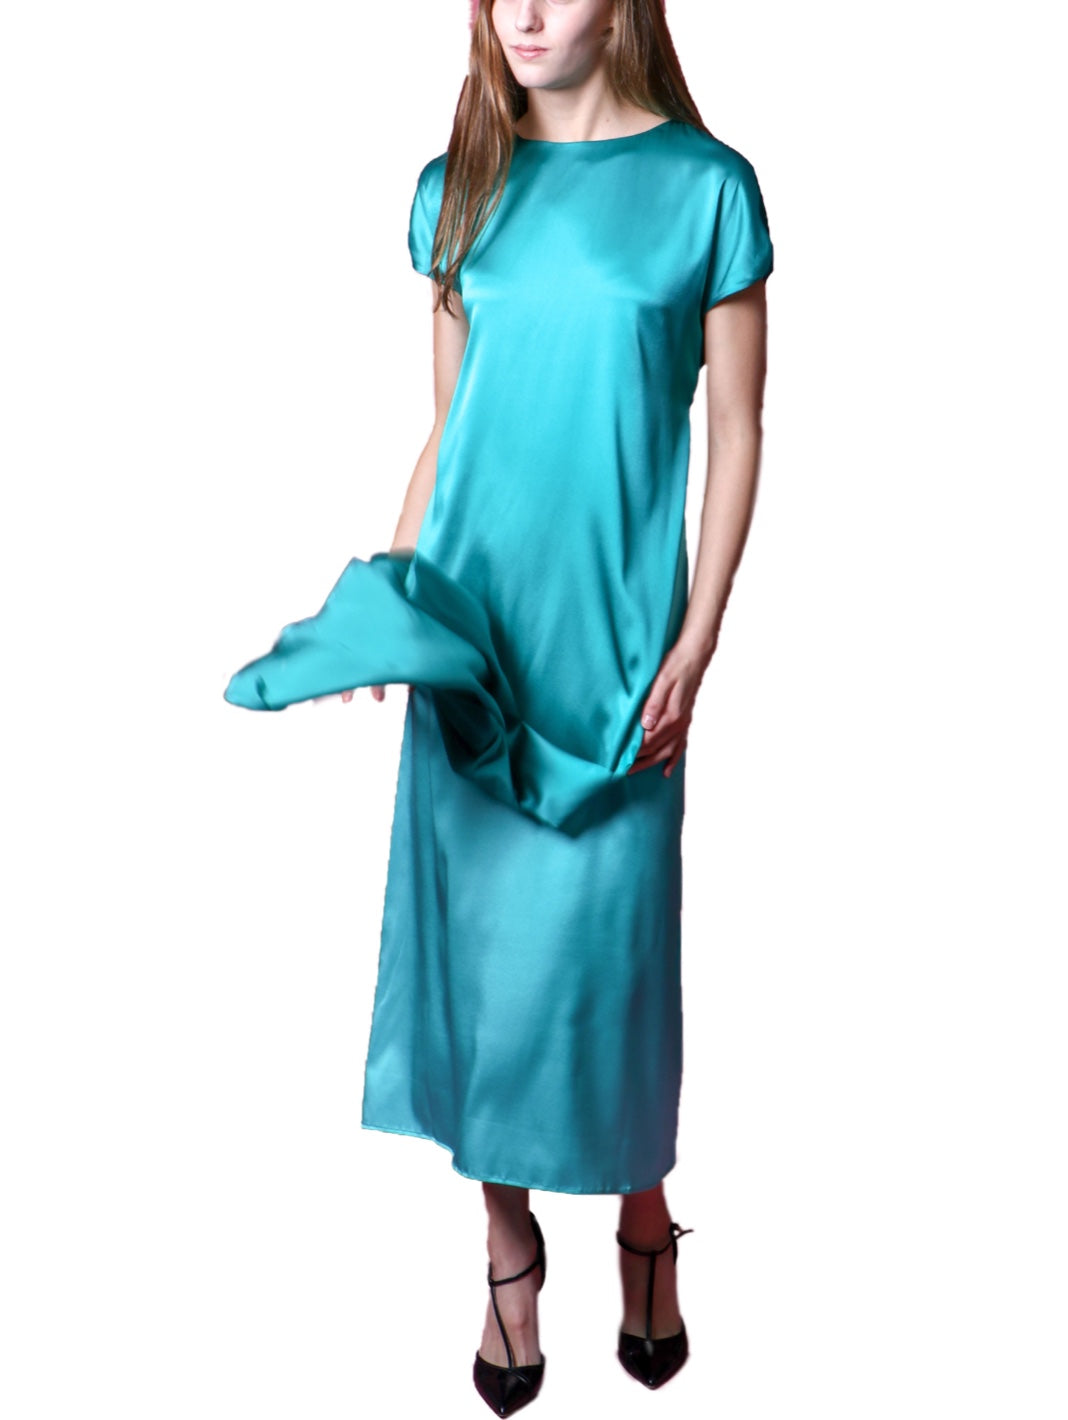 Silk Bicolor Dress - The Bobby Boga